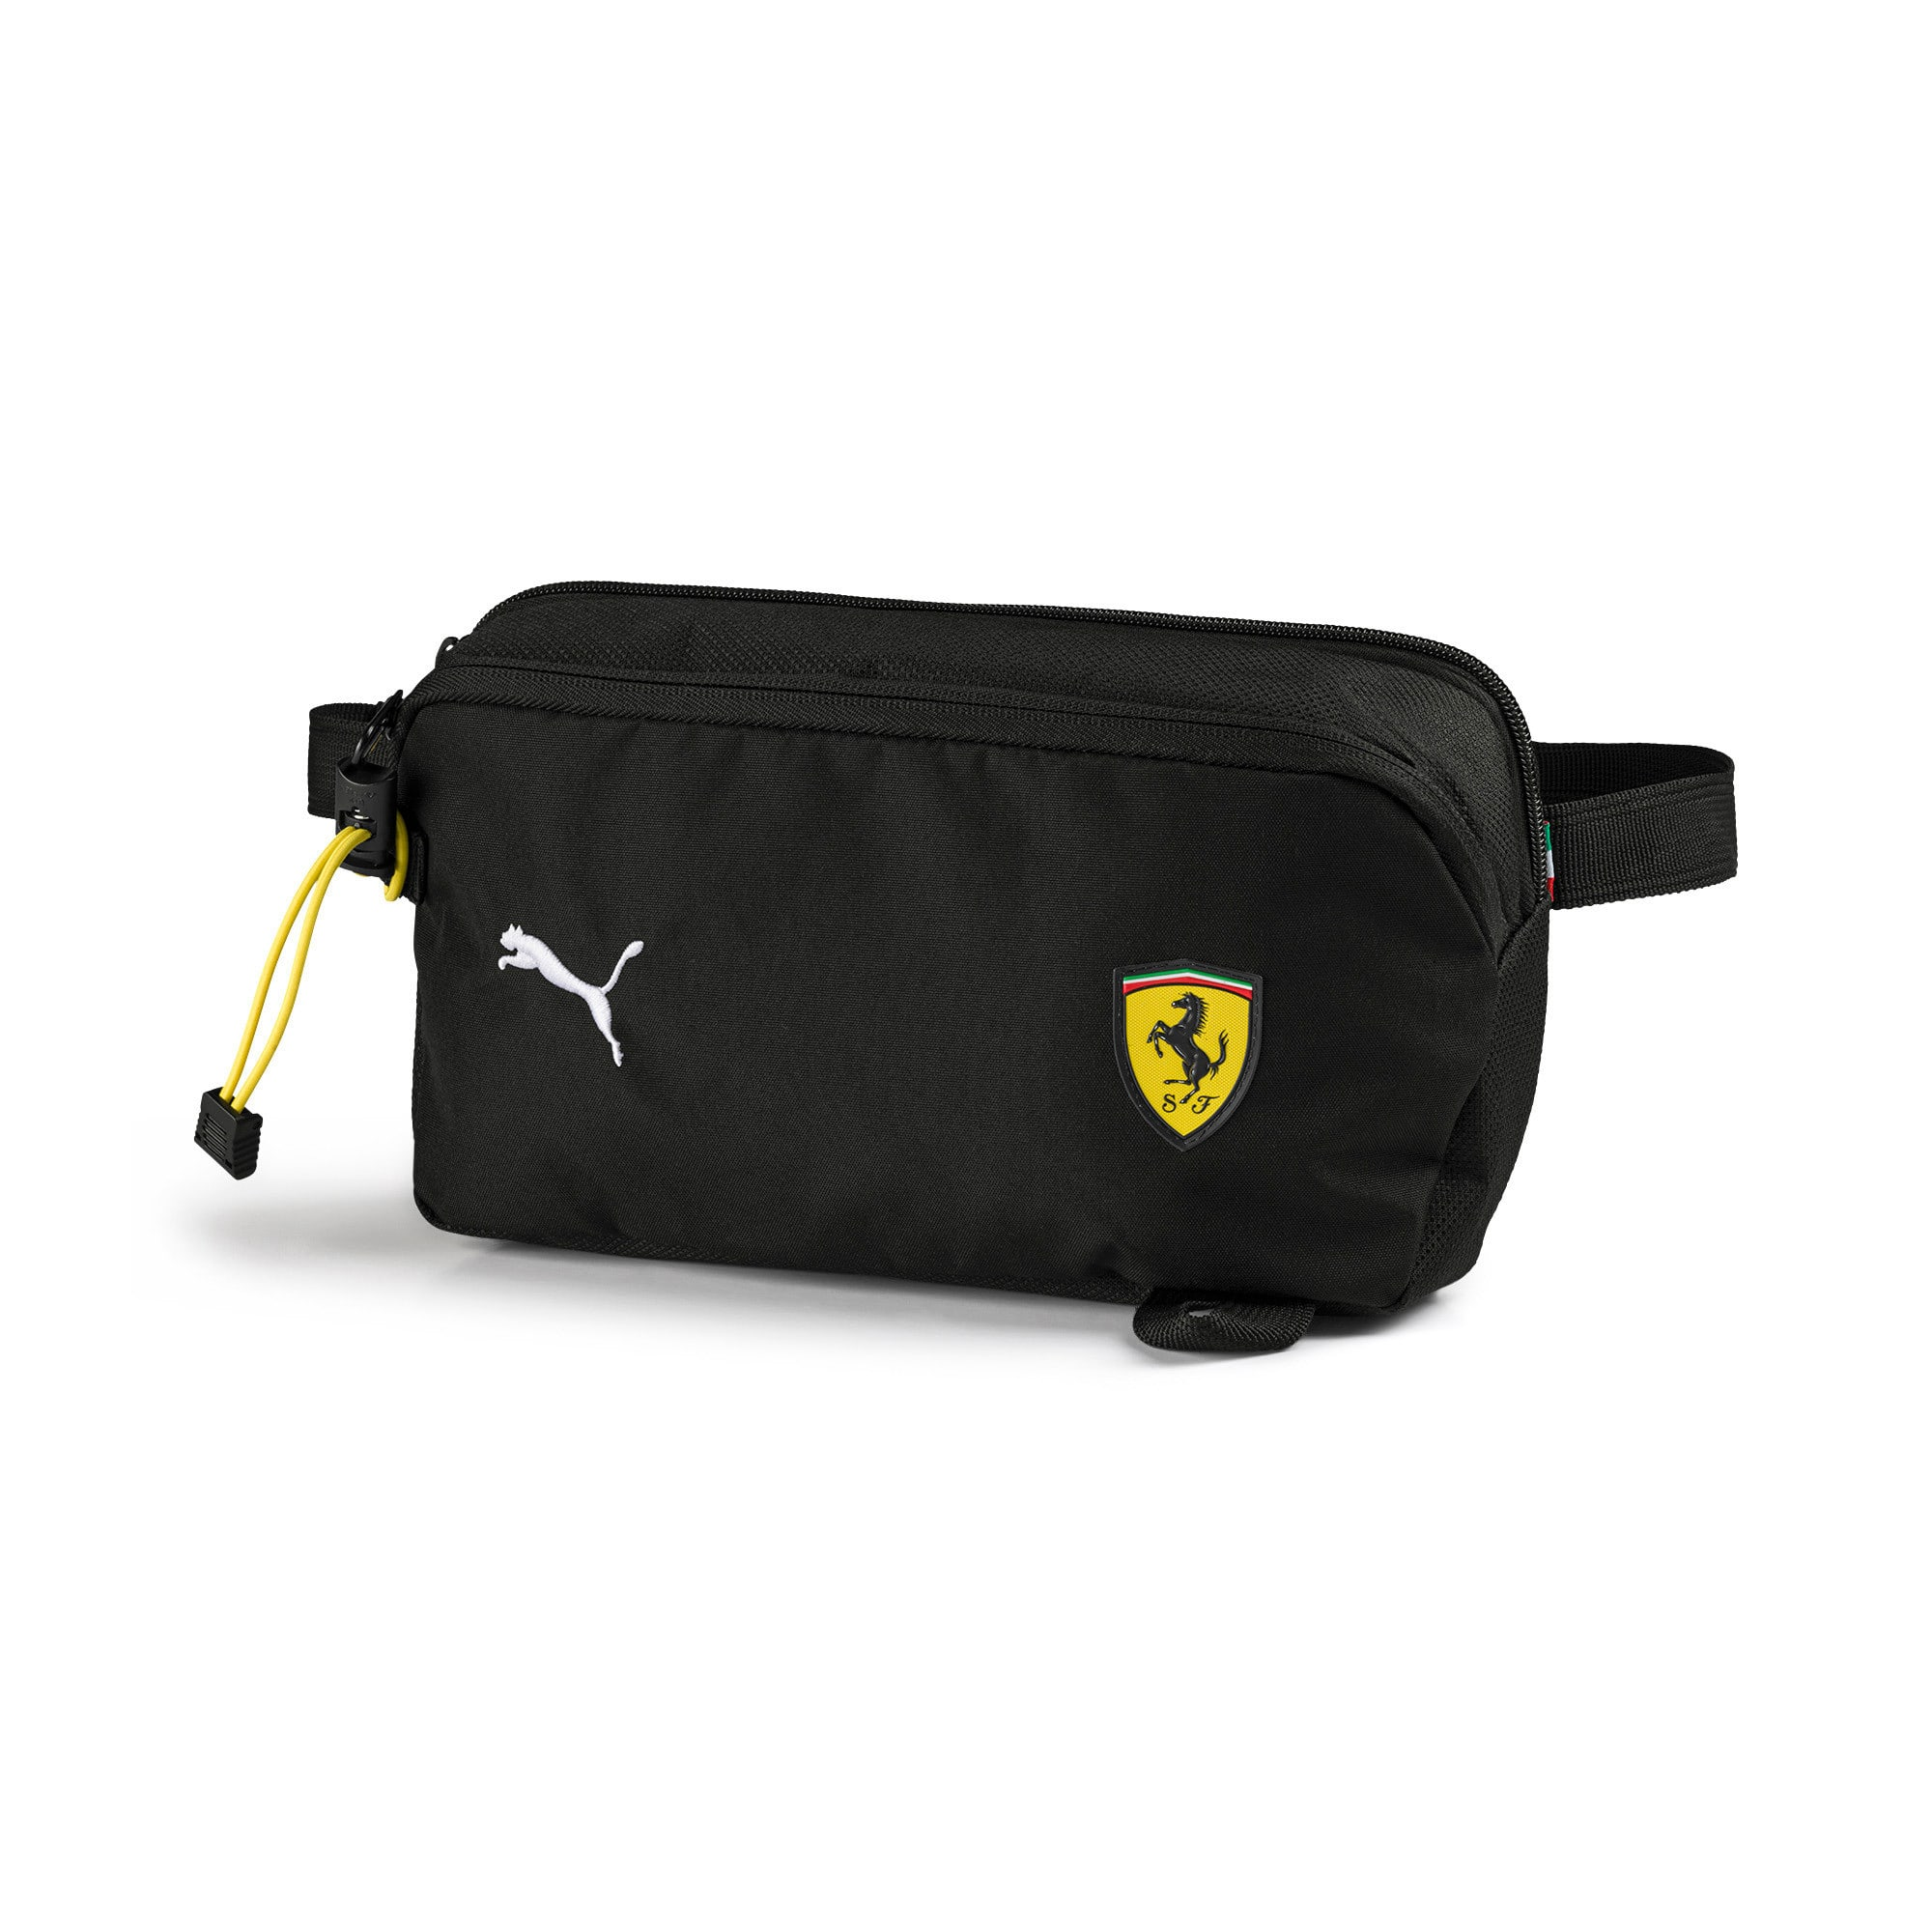 Thumbnail 1 of Ferrari Fanwear Waist Bag, Puma Black, medium